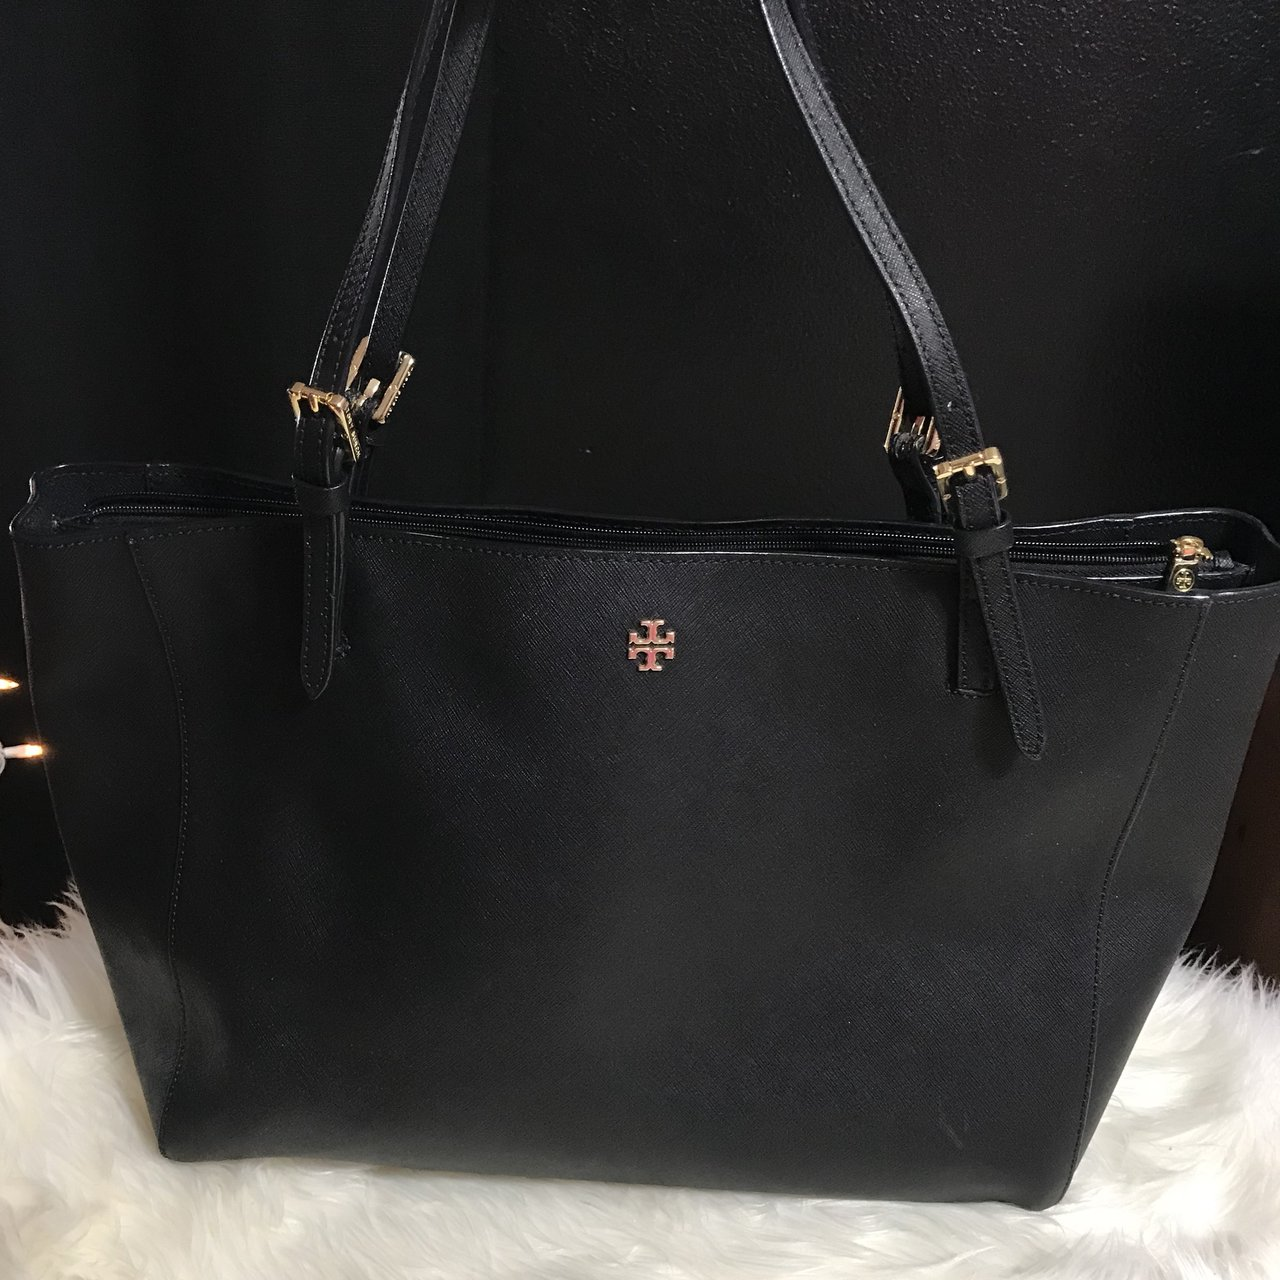 bf516cea2c13 Tory Burch black Large York buckle tote. Black saffiano with - Depop